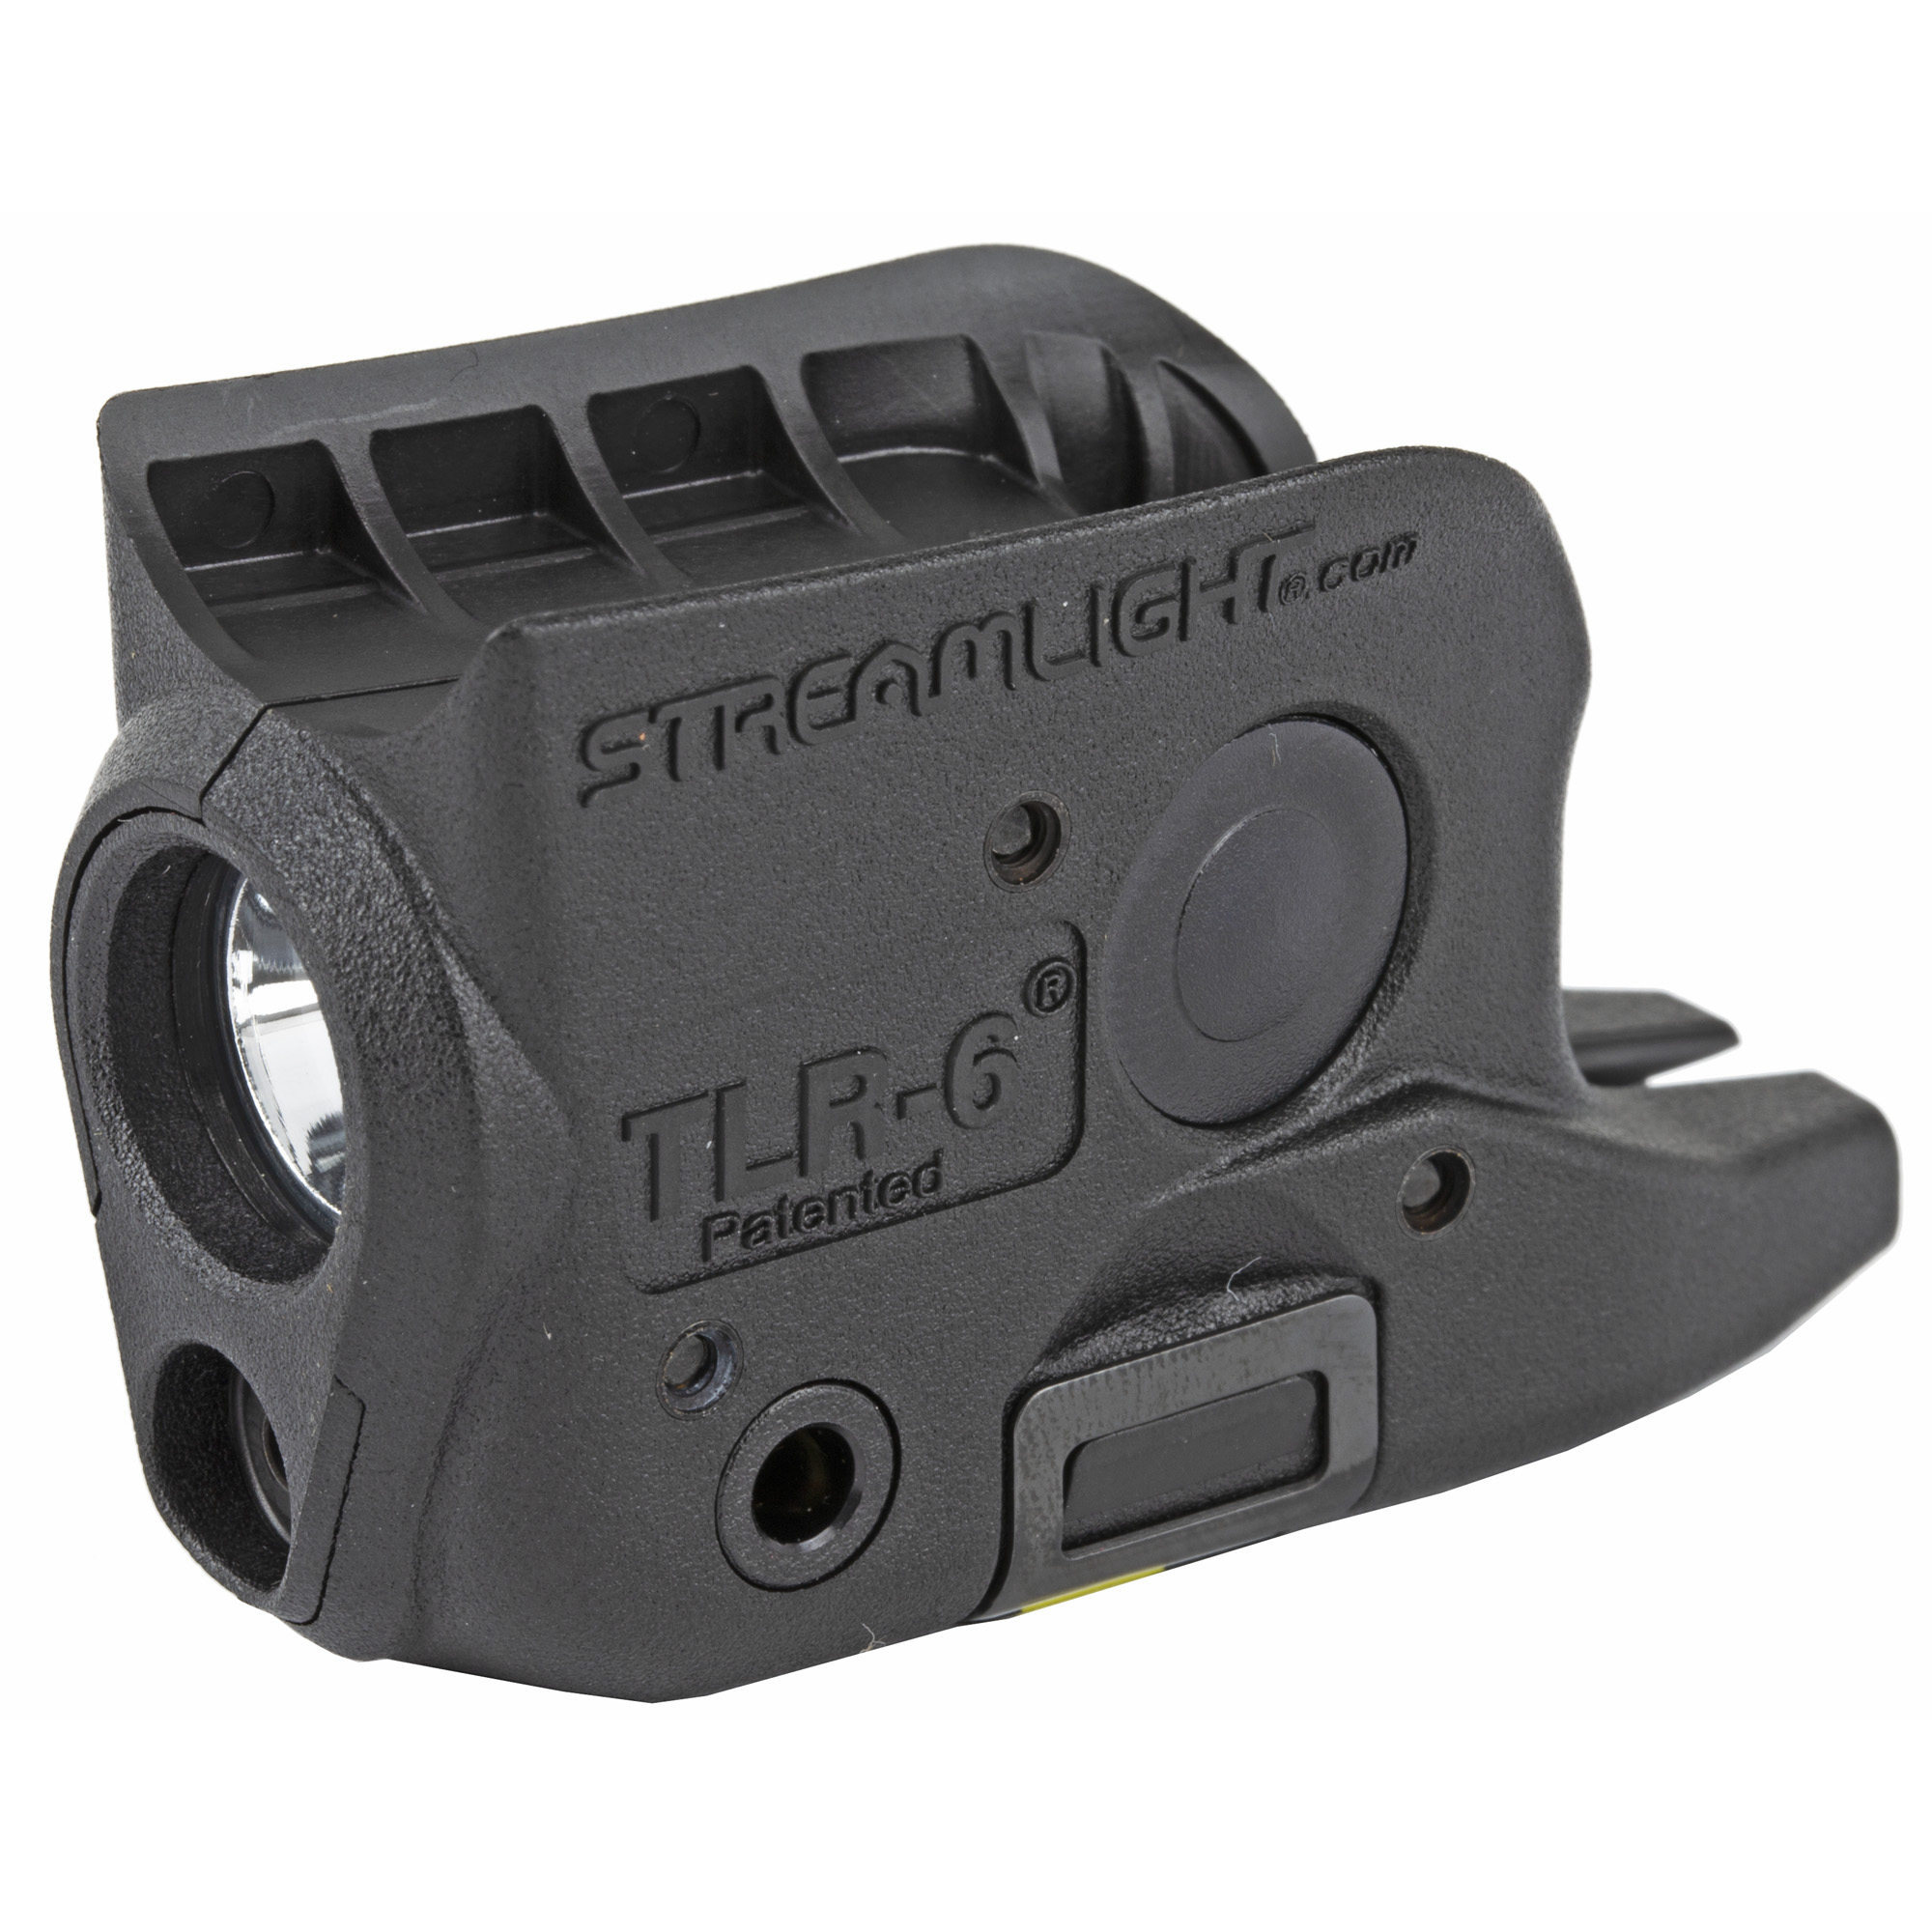 The first subcompact pistol light with both an LED illuminator and a laser.